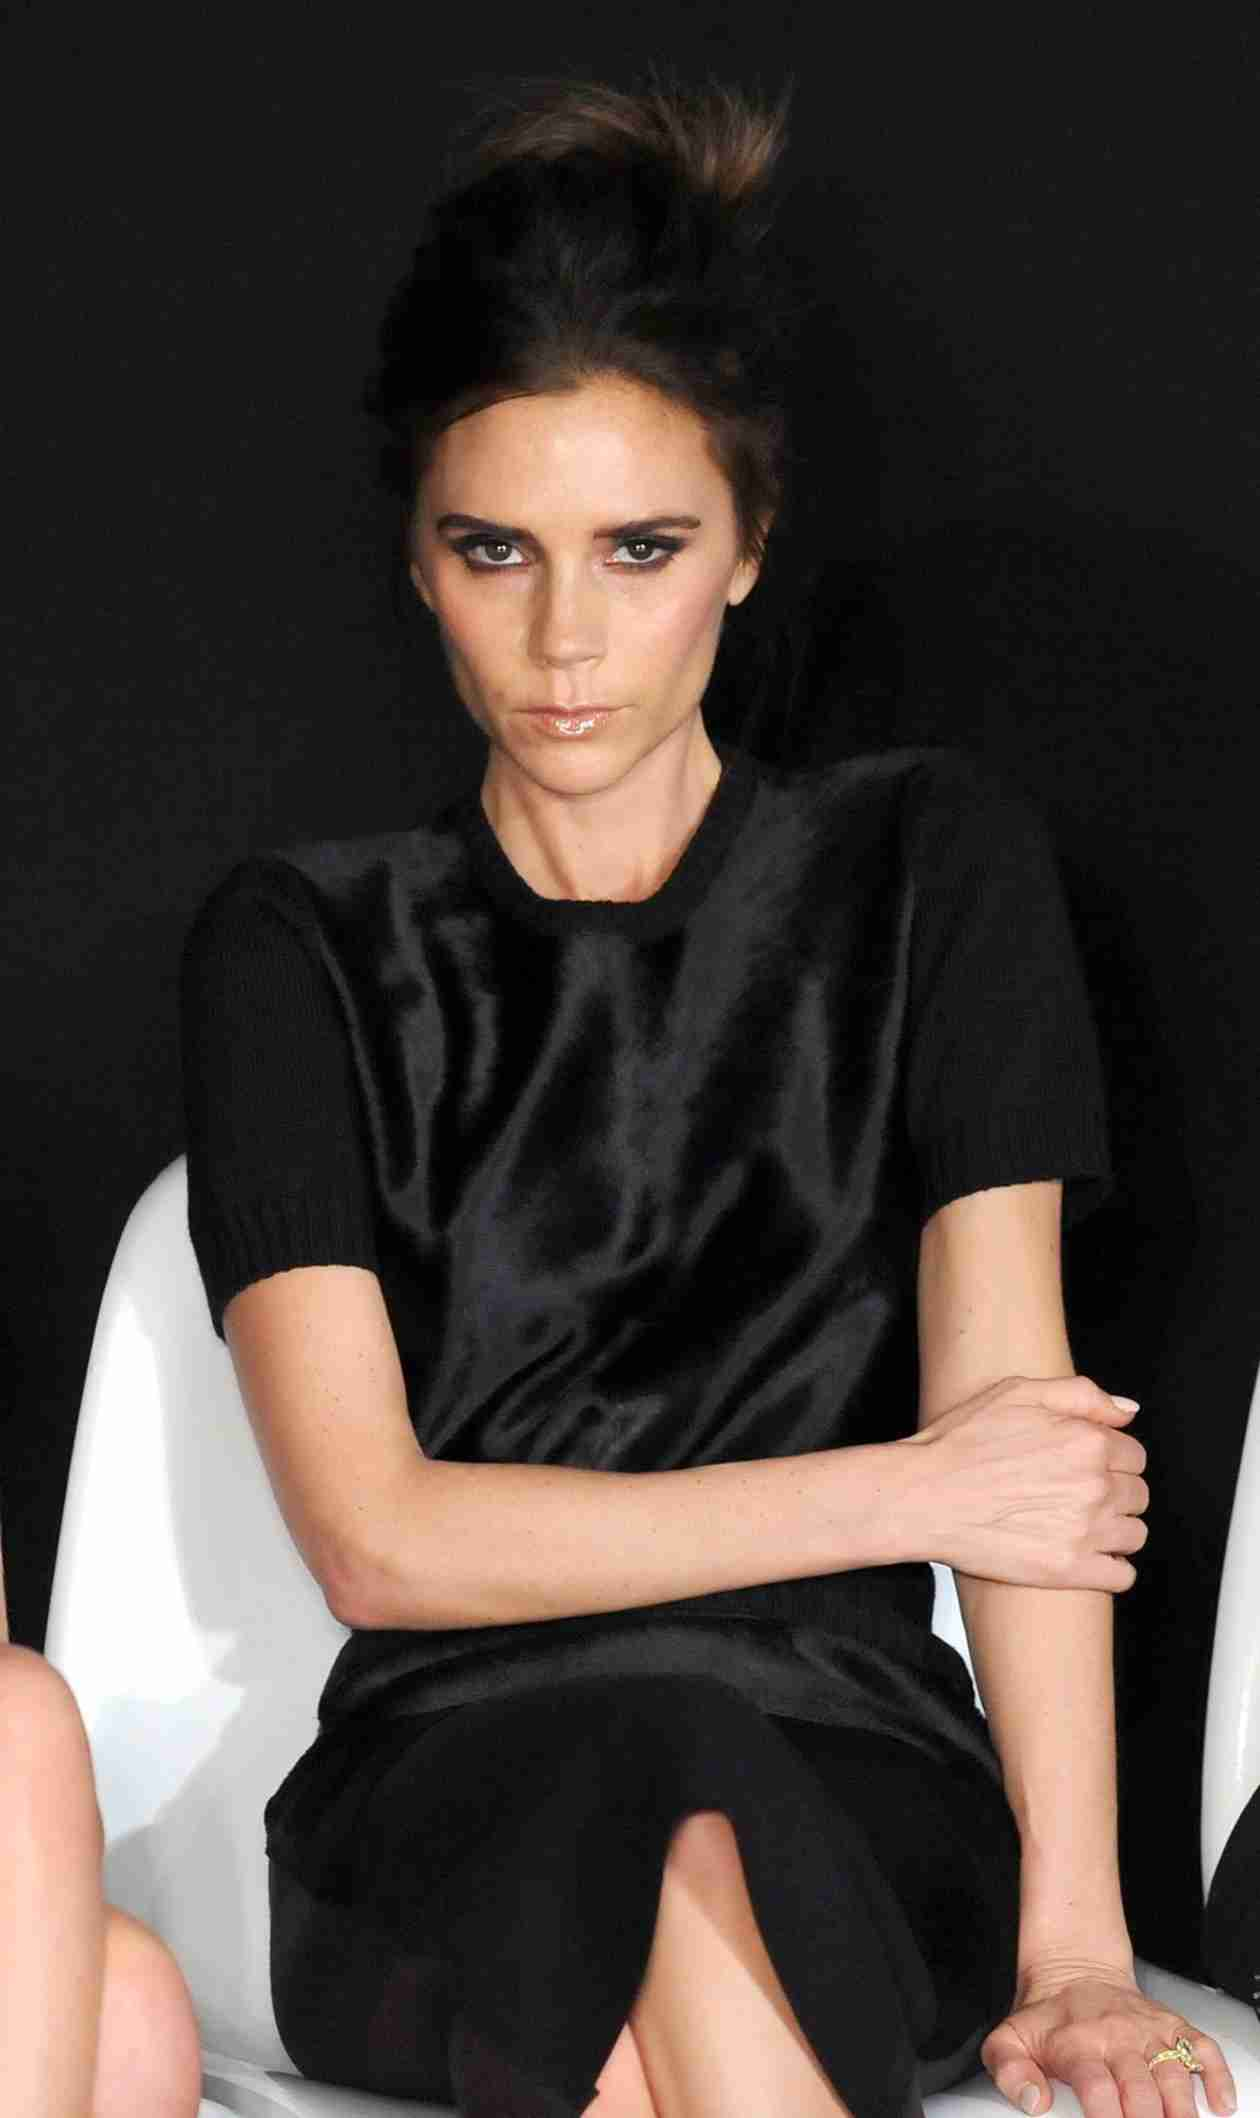 Will Victoria Beckham Ever Sing Again? 3 Weird Fan Questions, Answered